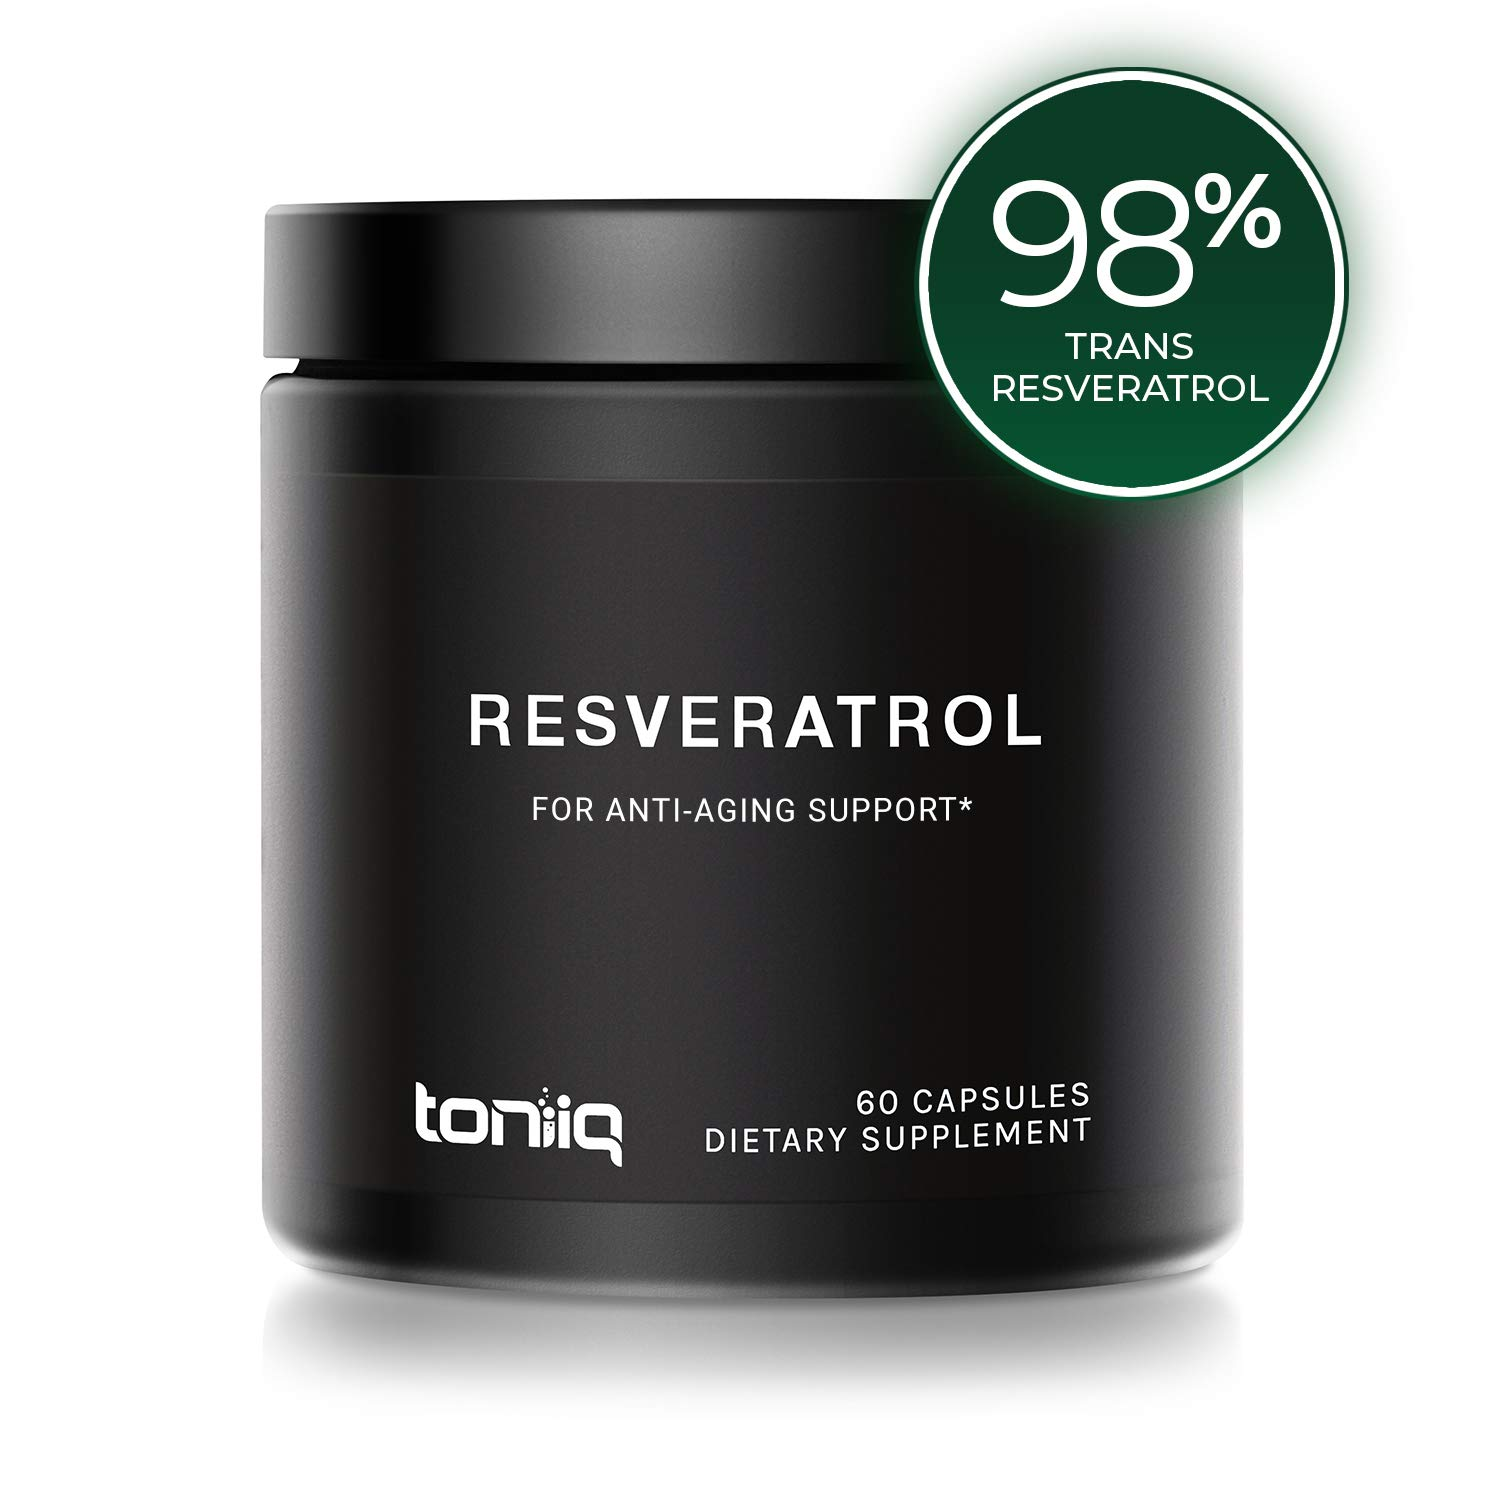 Ultra High Purity Resveratrol Capsules - 98% Trans-Resveratrol - Support for Anti Aging - 60 Caps Reservatrol Supplement by Toniiq